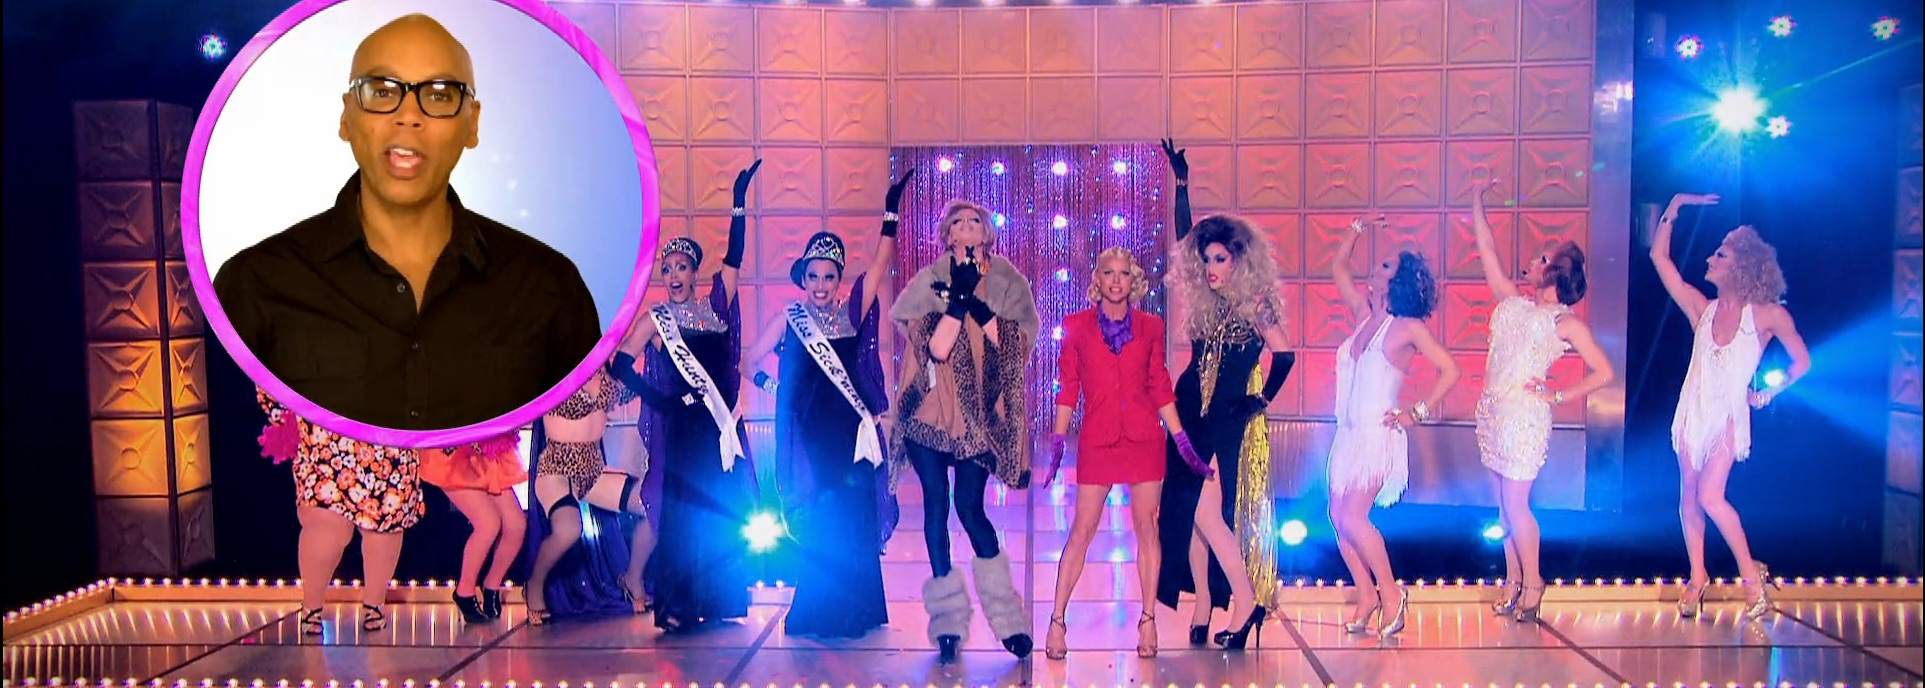 rupauls-drag-race-reality-show-para-leigos-iradex